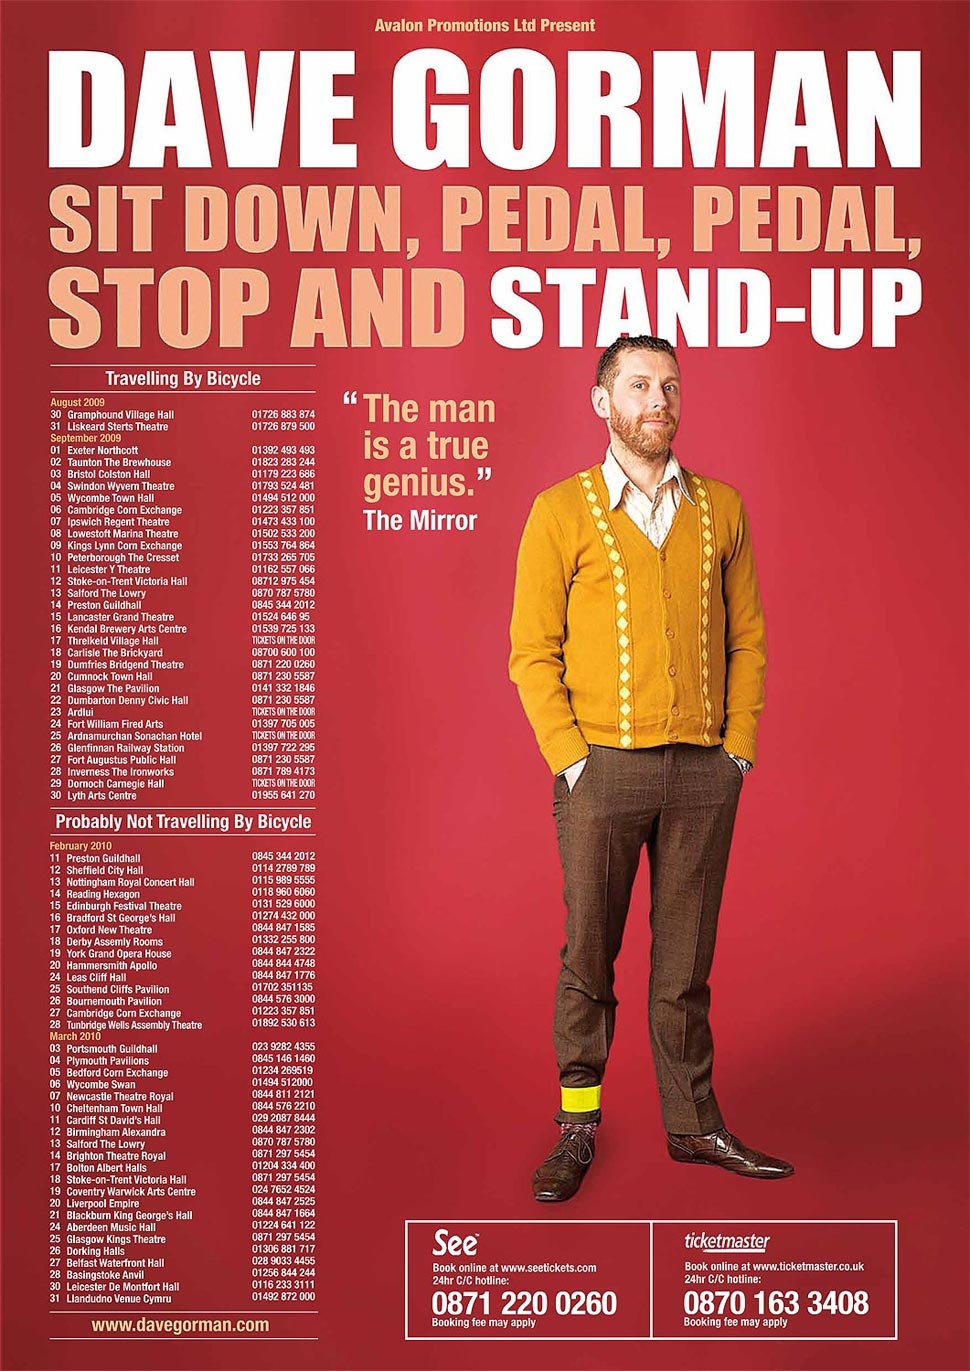 dave-gorman-sit-down-pedal-pedal-stop-and-stand-up-tour-pete-dadds